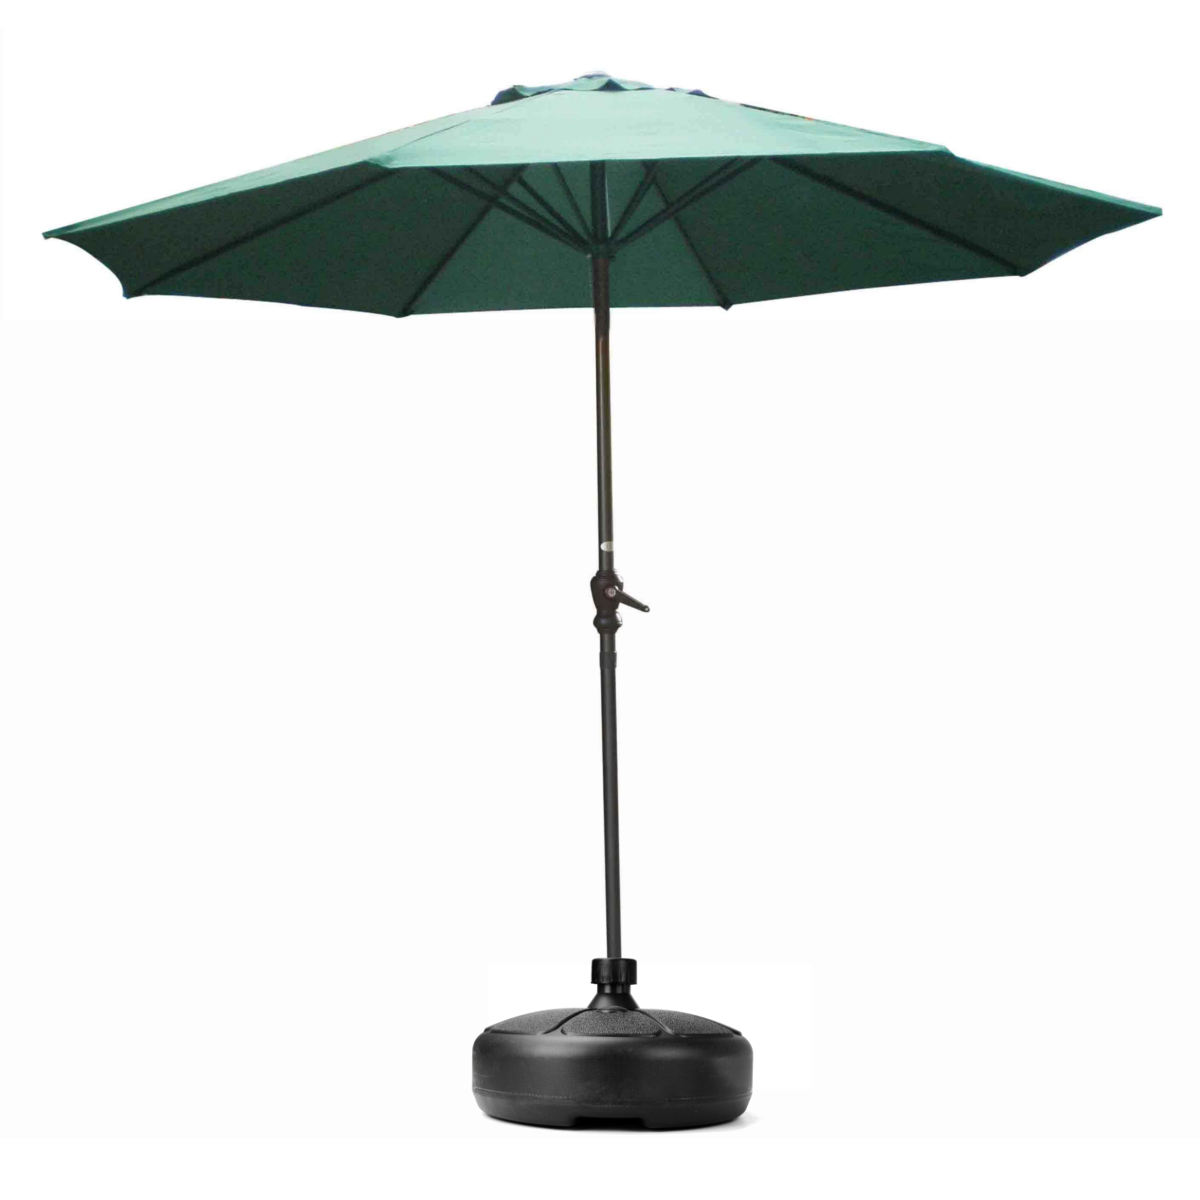 Outdoor Furniture Parasol Garden Umbrella Stand Round Patio Umbrella